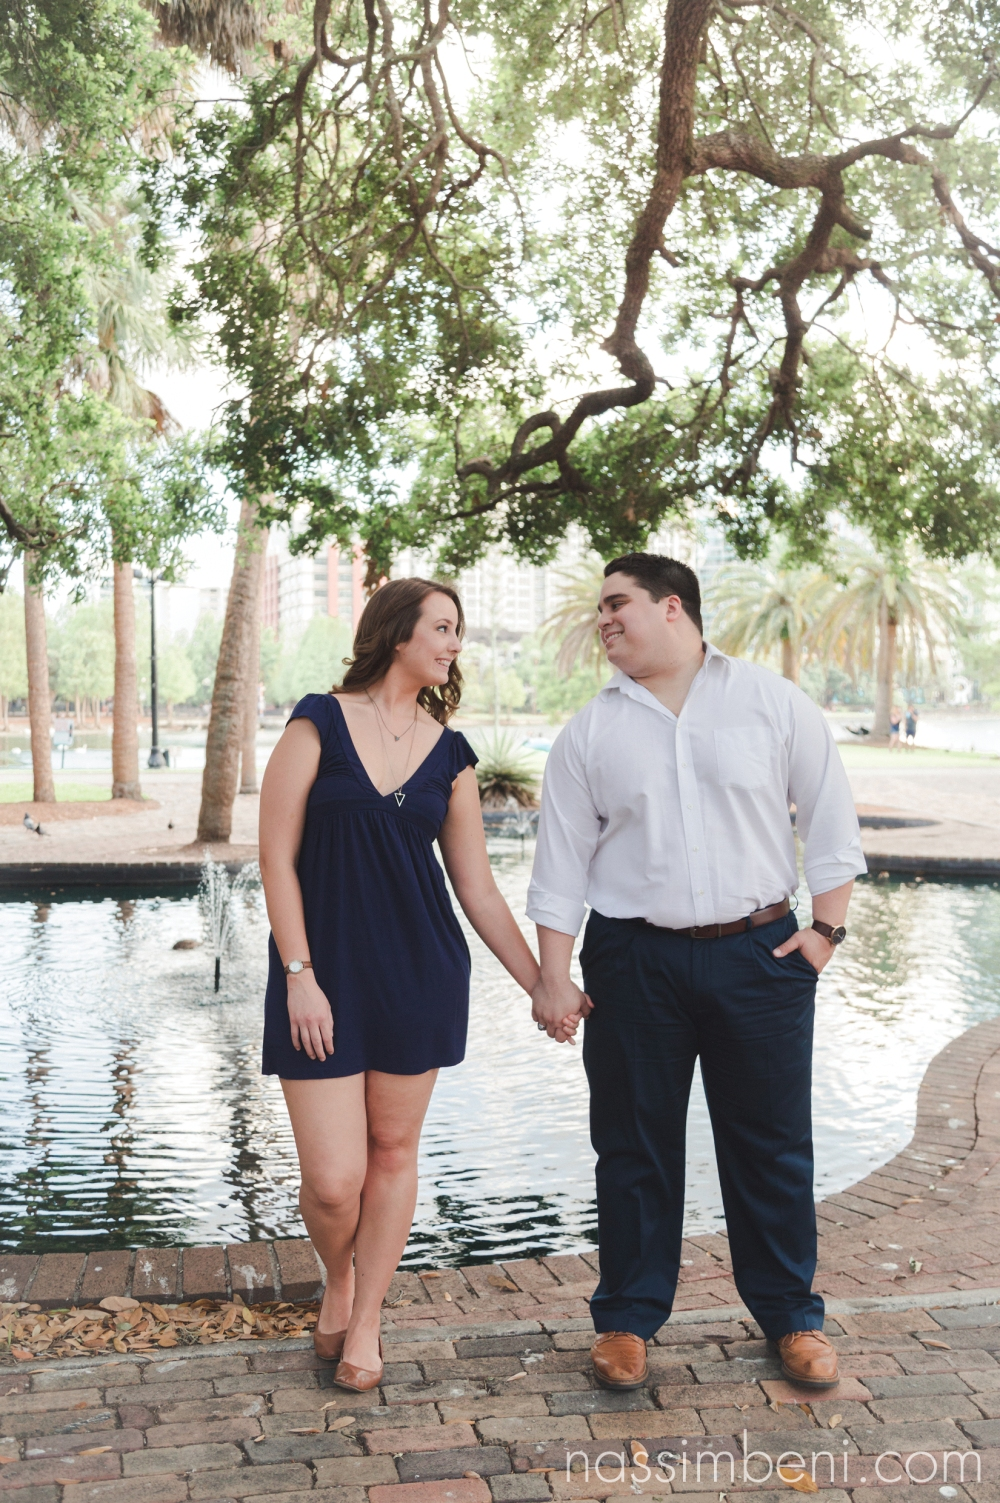 Lake-Eola-engagment-photos-nassimbeni-photography-3